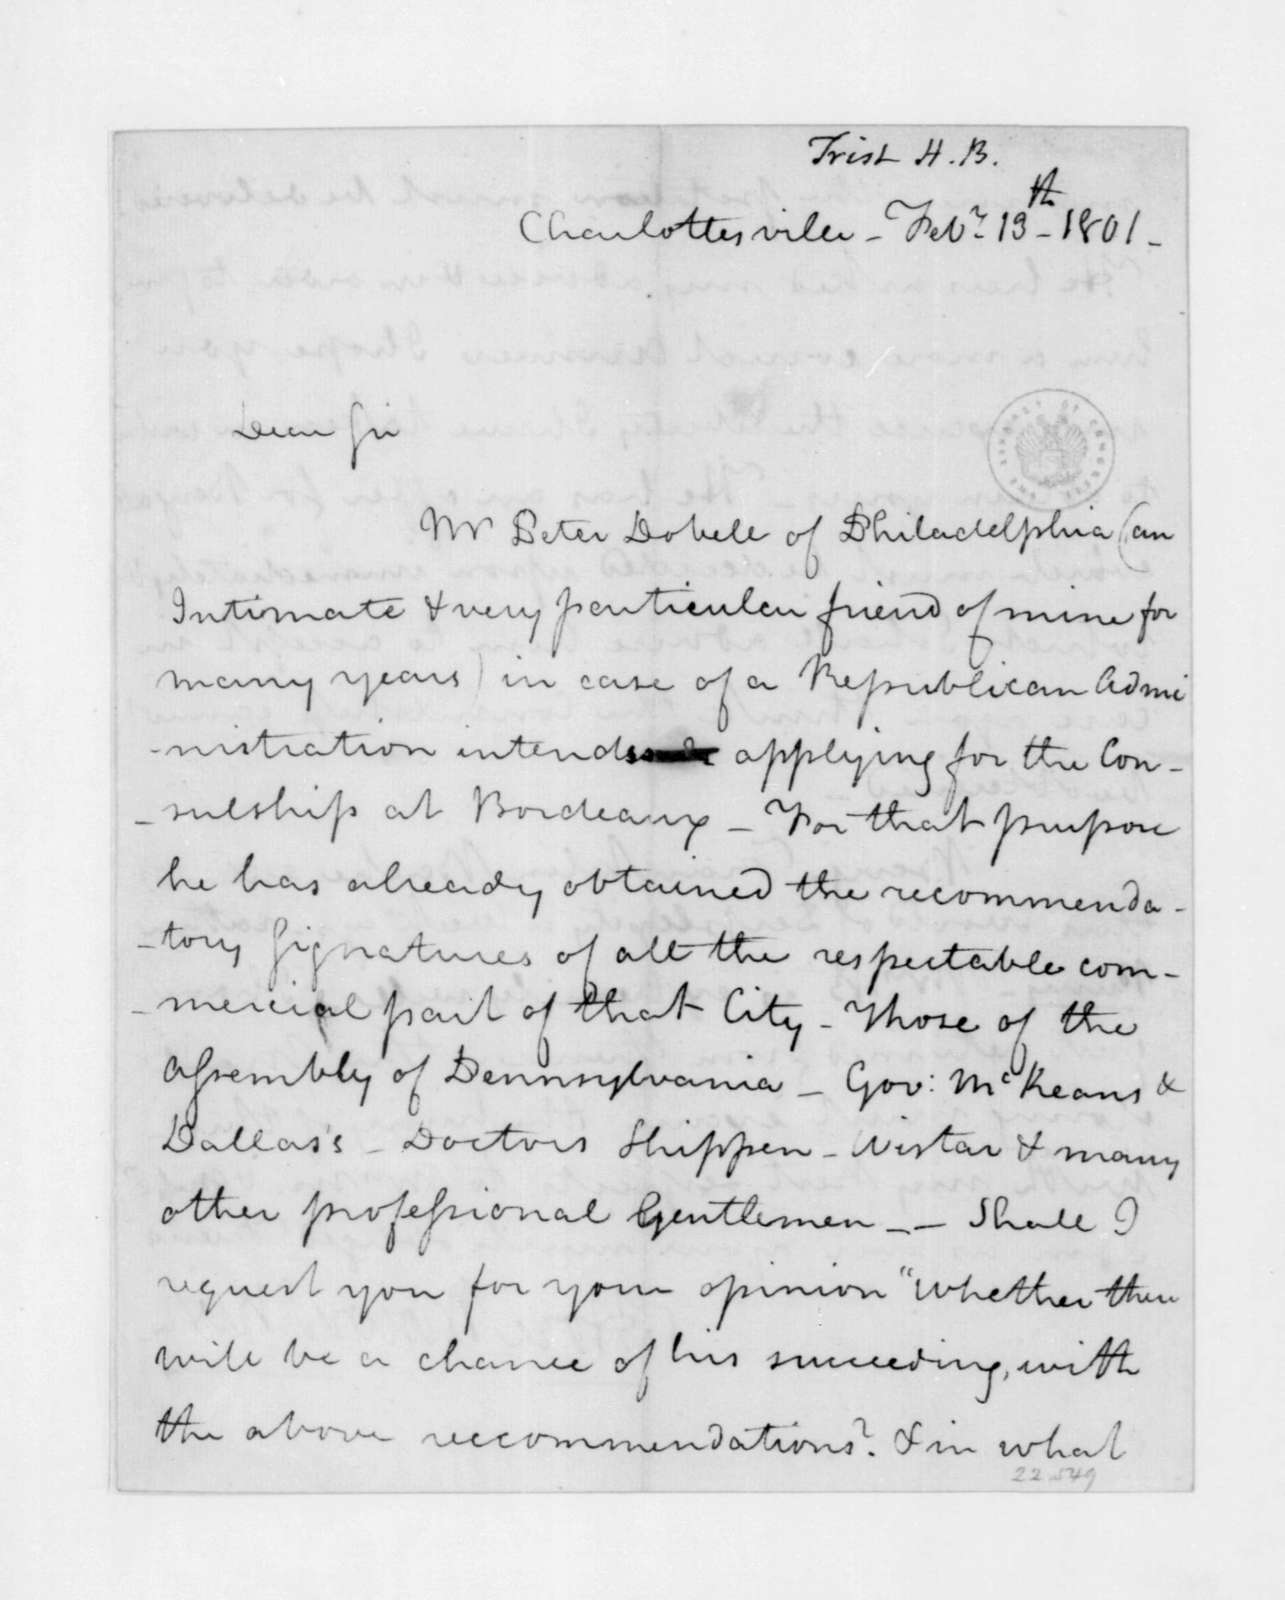 Hore Browse Trist to James Madison, February 13, 1801.